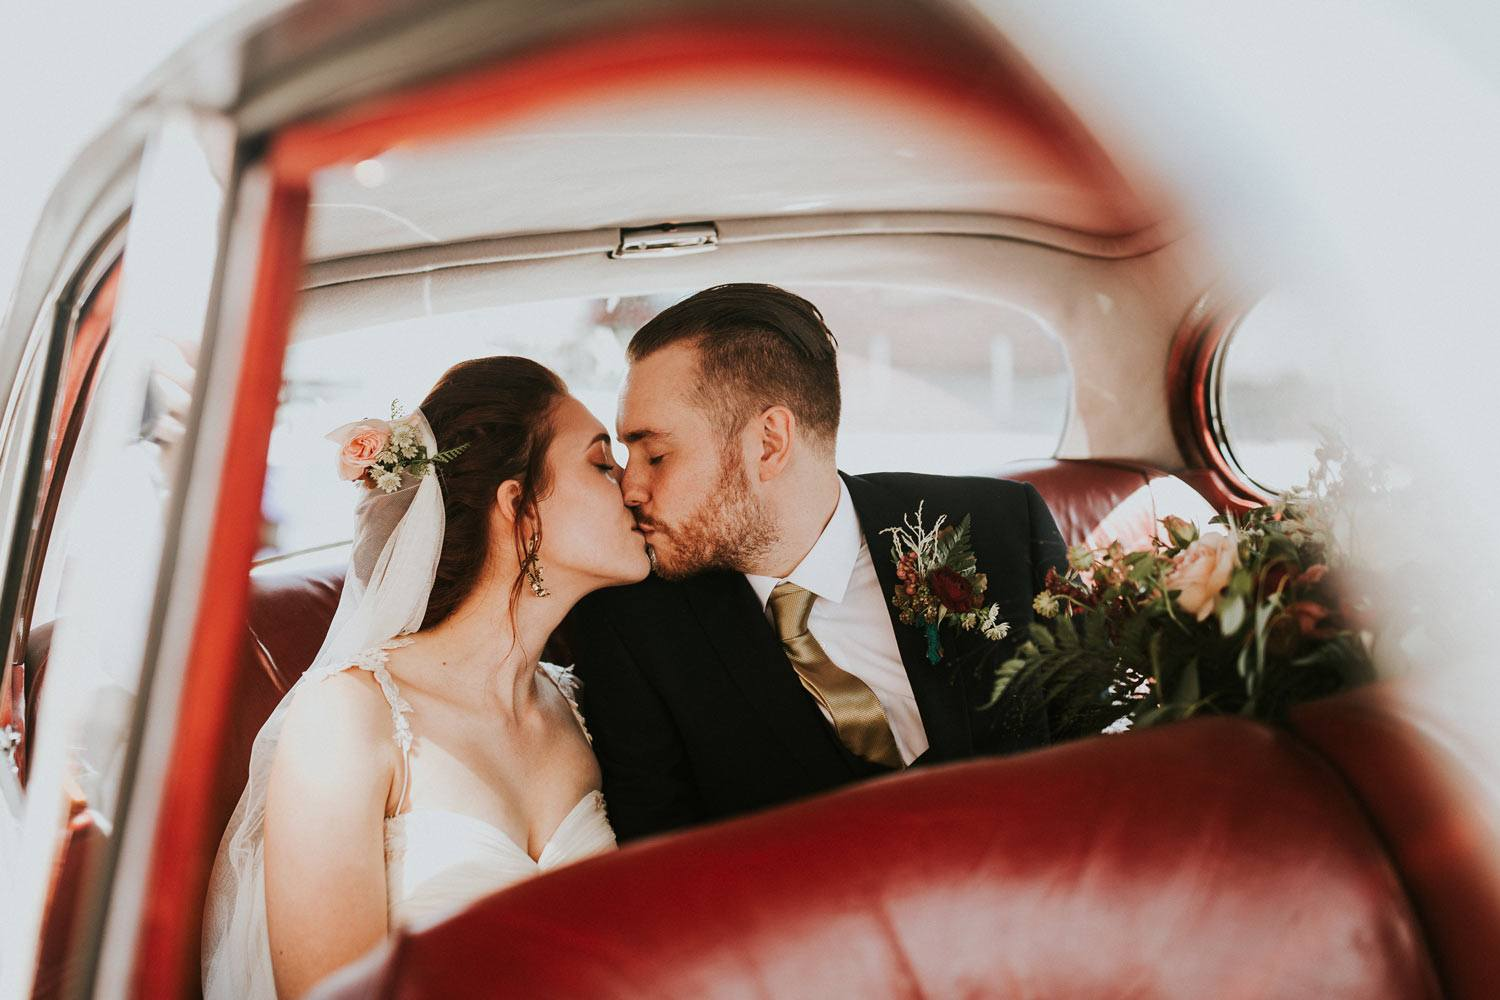 Couple kissing in wedding car with flowers